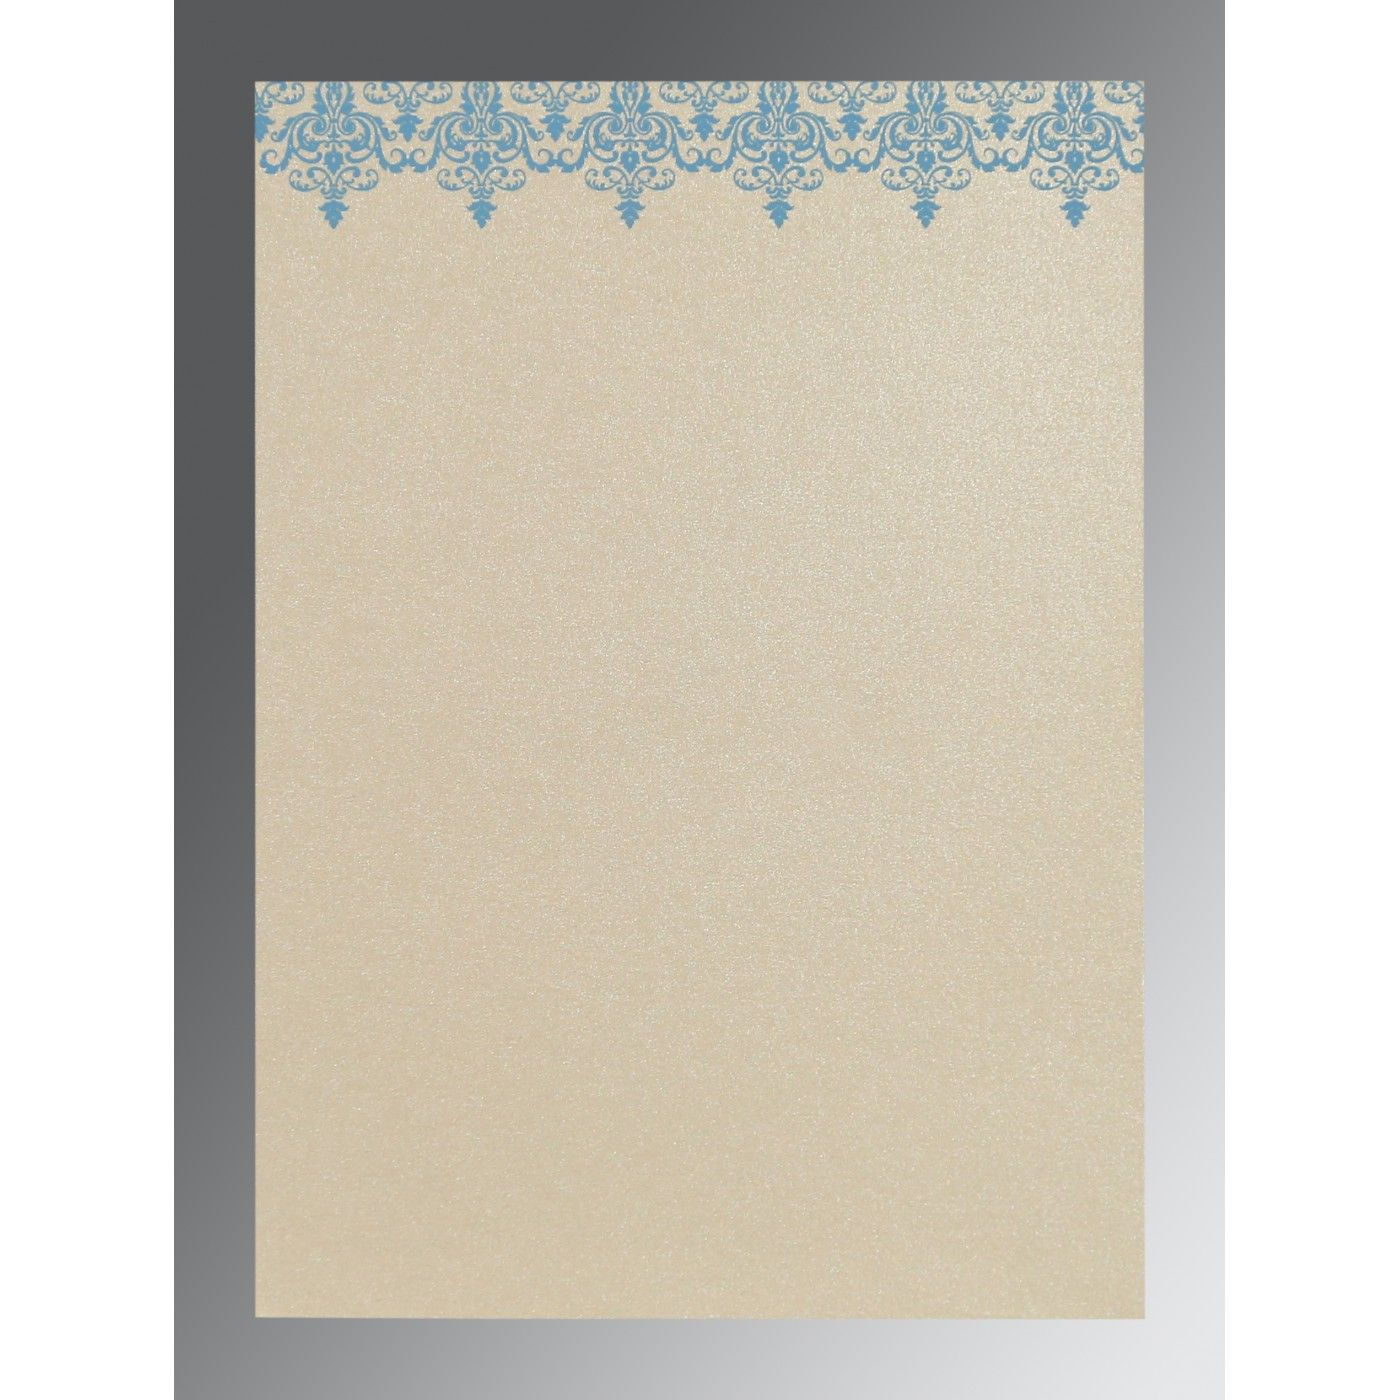 TURQUOISE SHIMMERY SCREEN PRINTED WEDDING CARD : CI-8244F - IndianWeddingCards